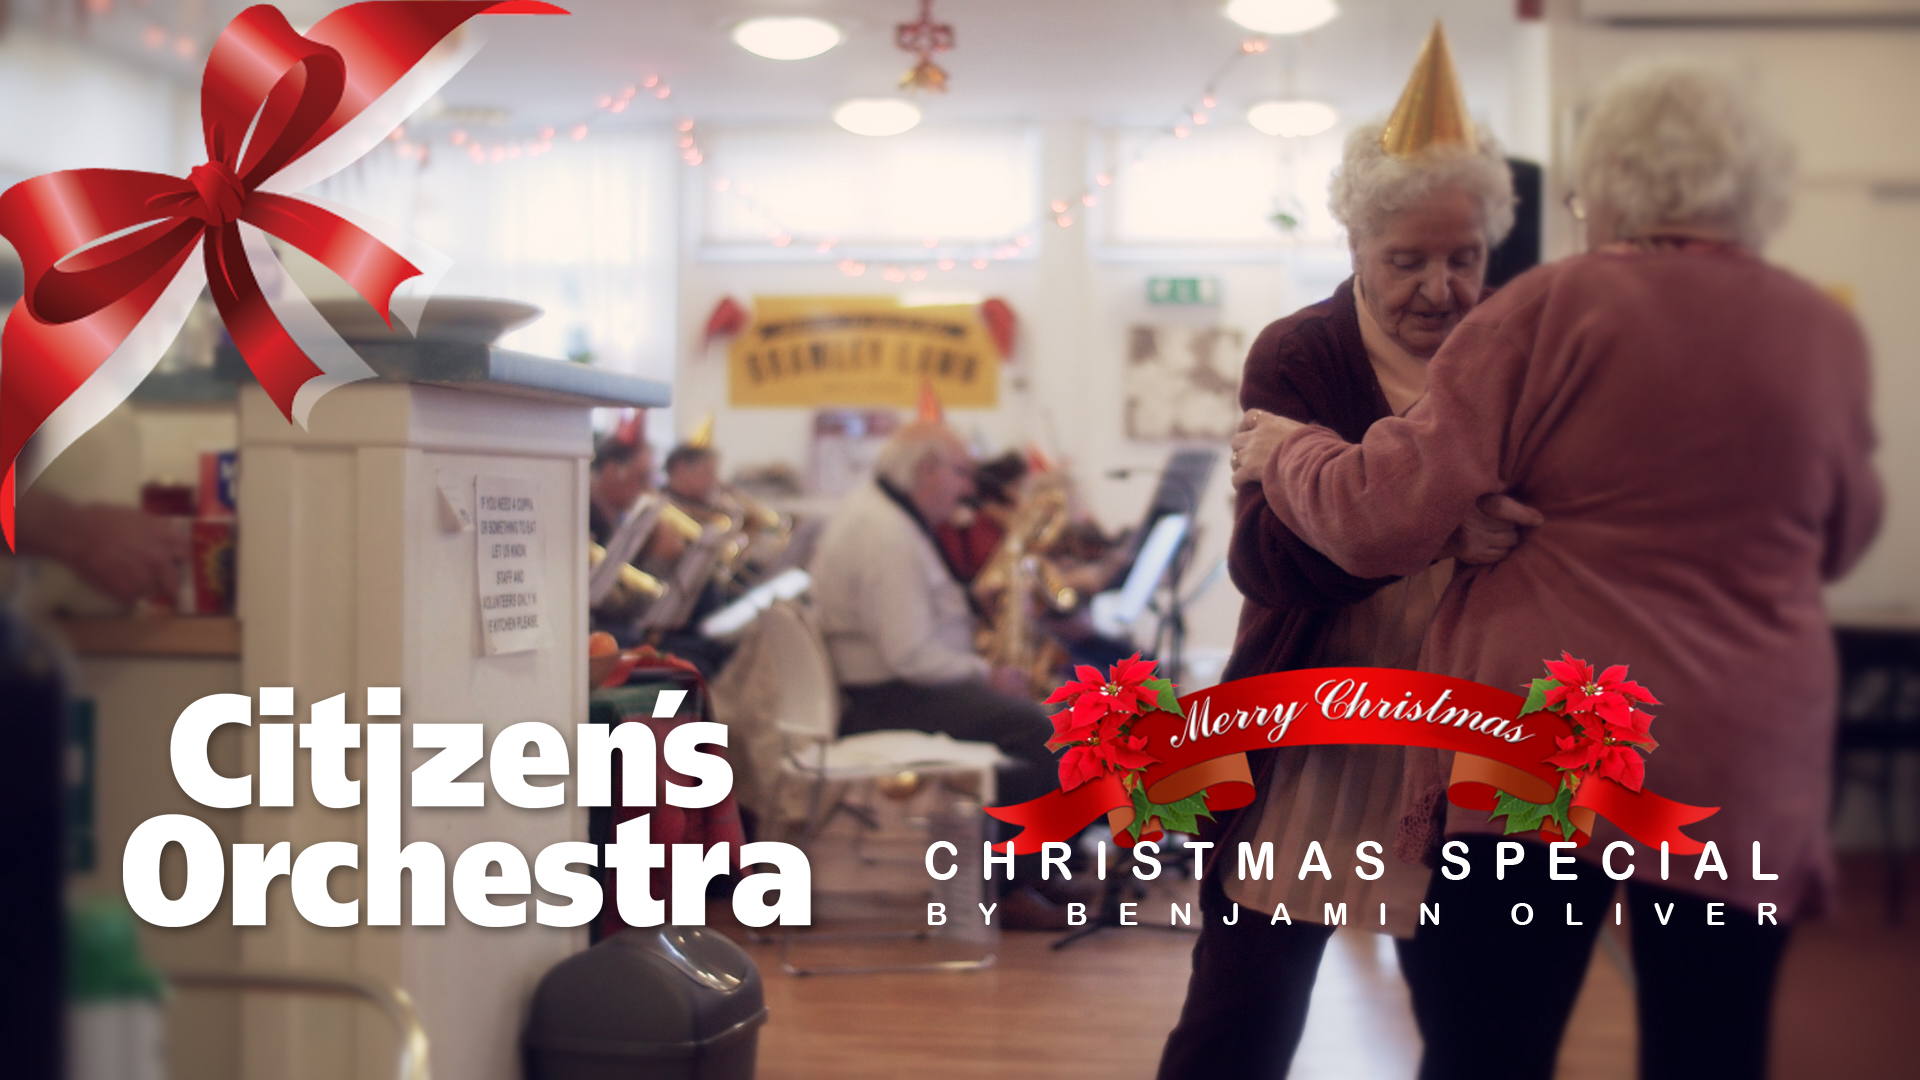 The Citizens Orchestra Christmas Special!